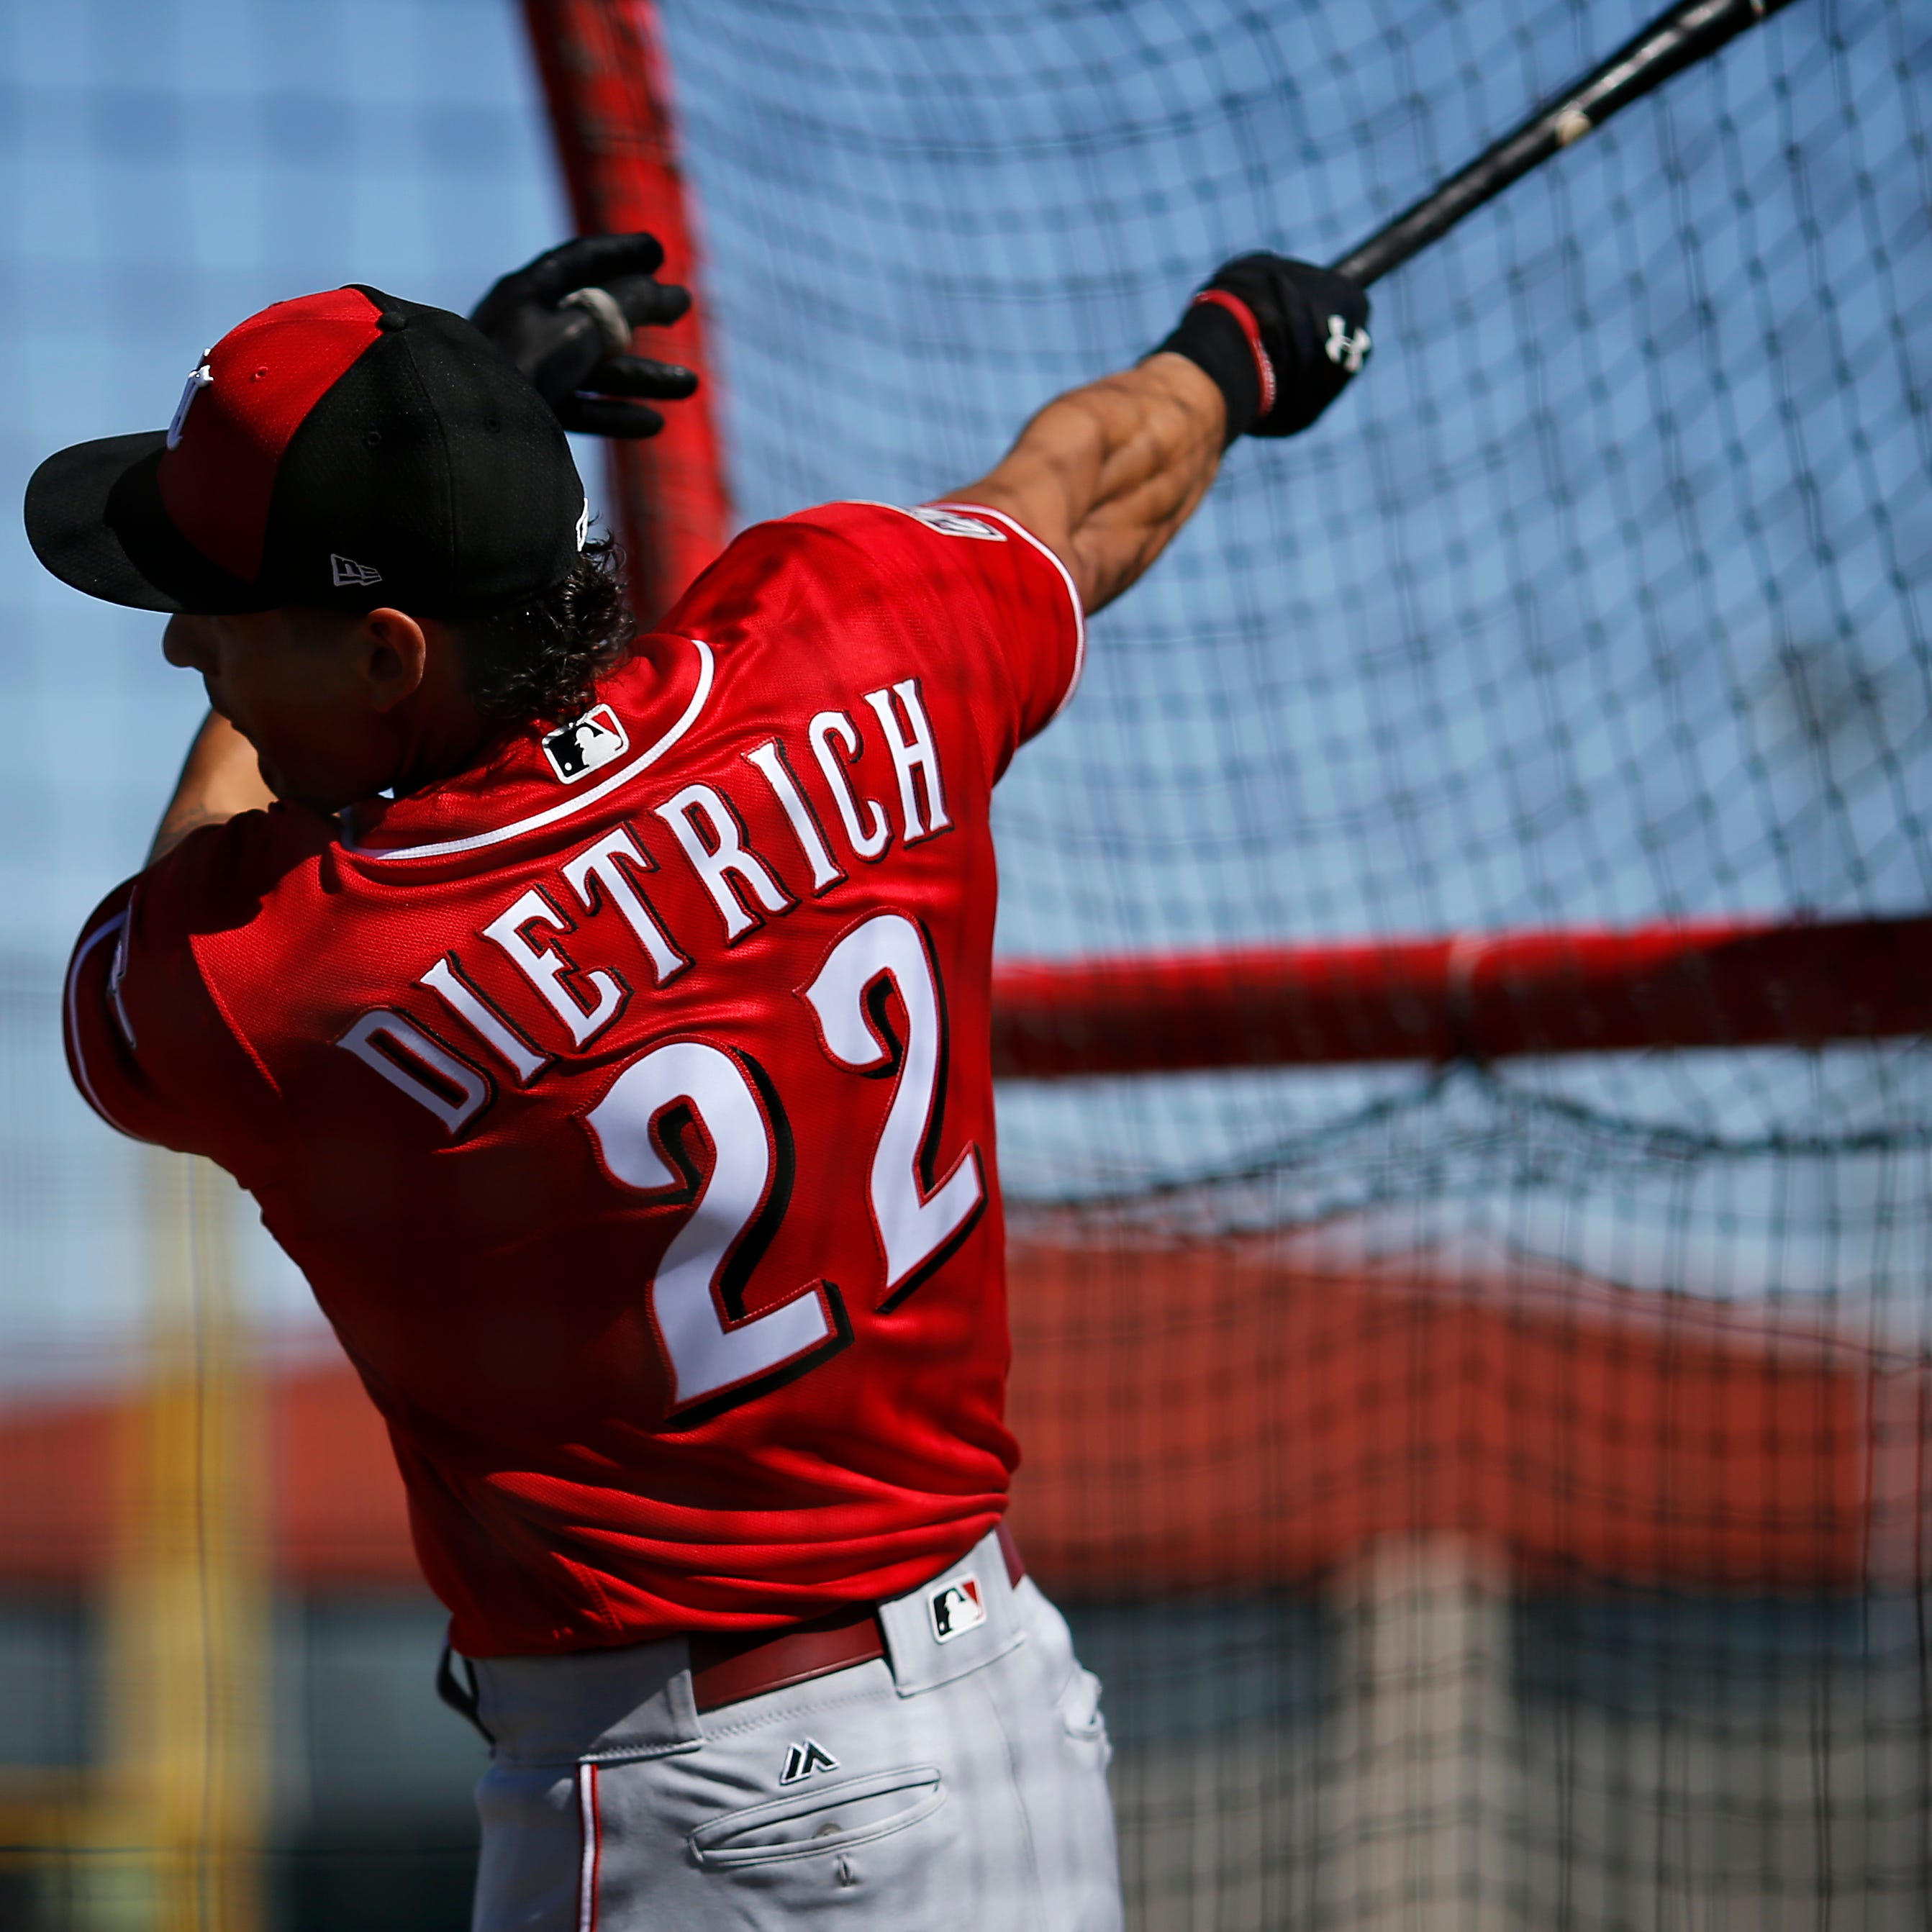 Nick Senzel, Derek Dietrich power Cincinnati Reds to spring win over Chicago White Sox